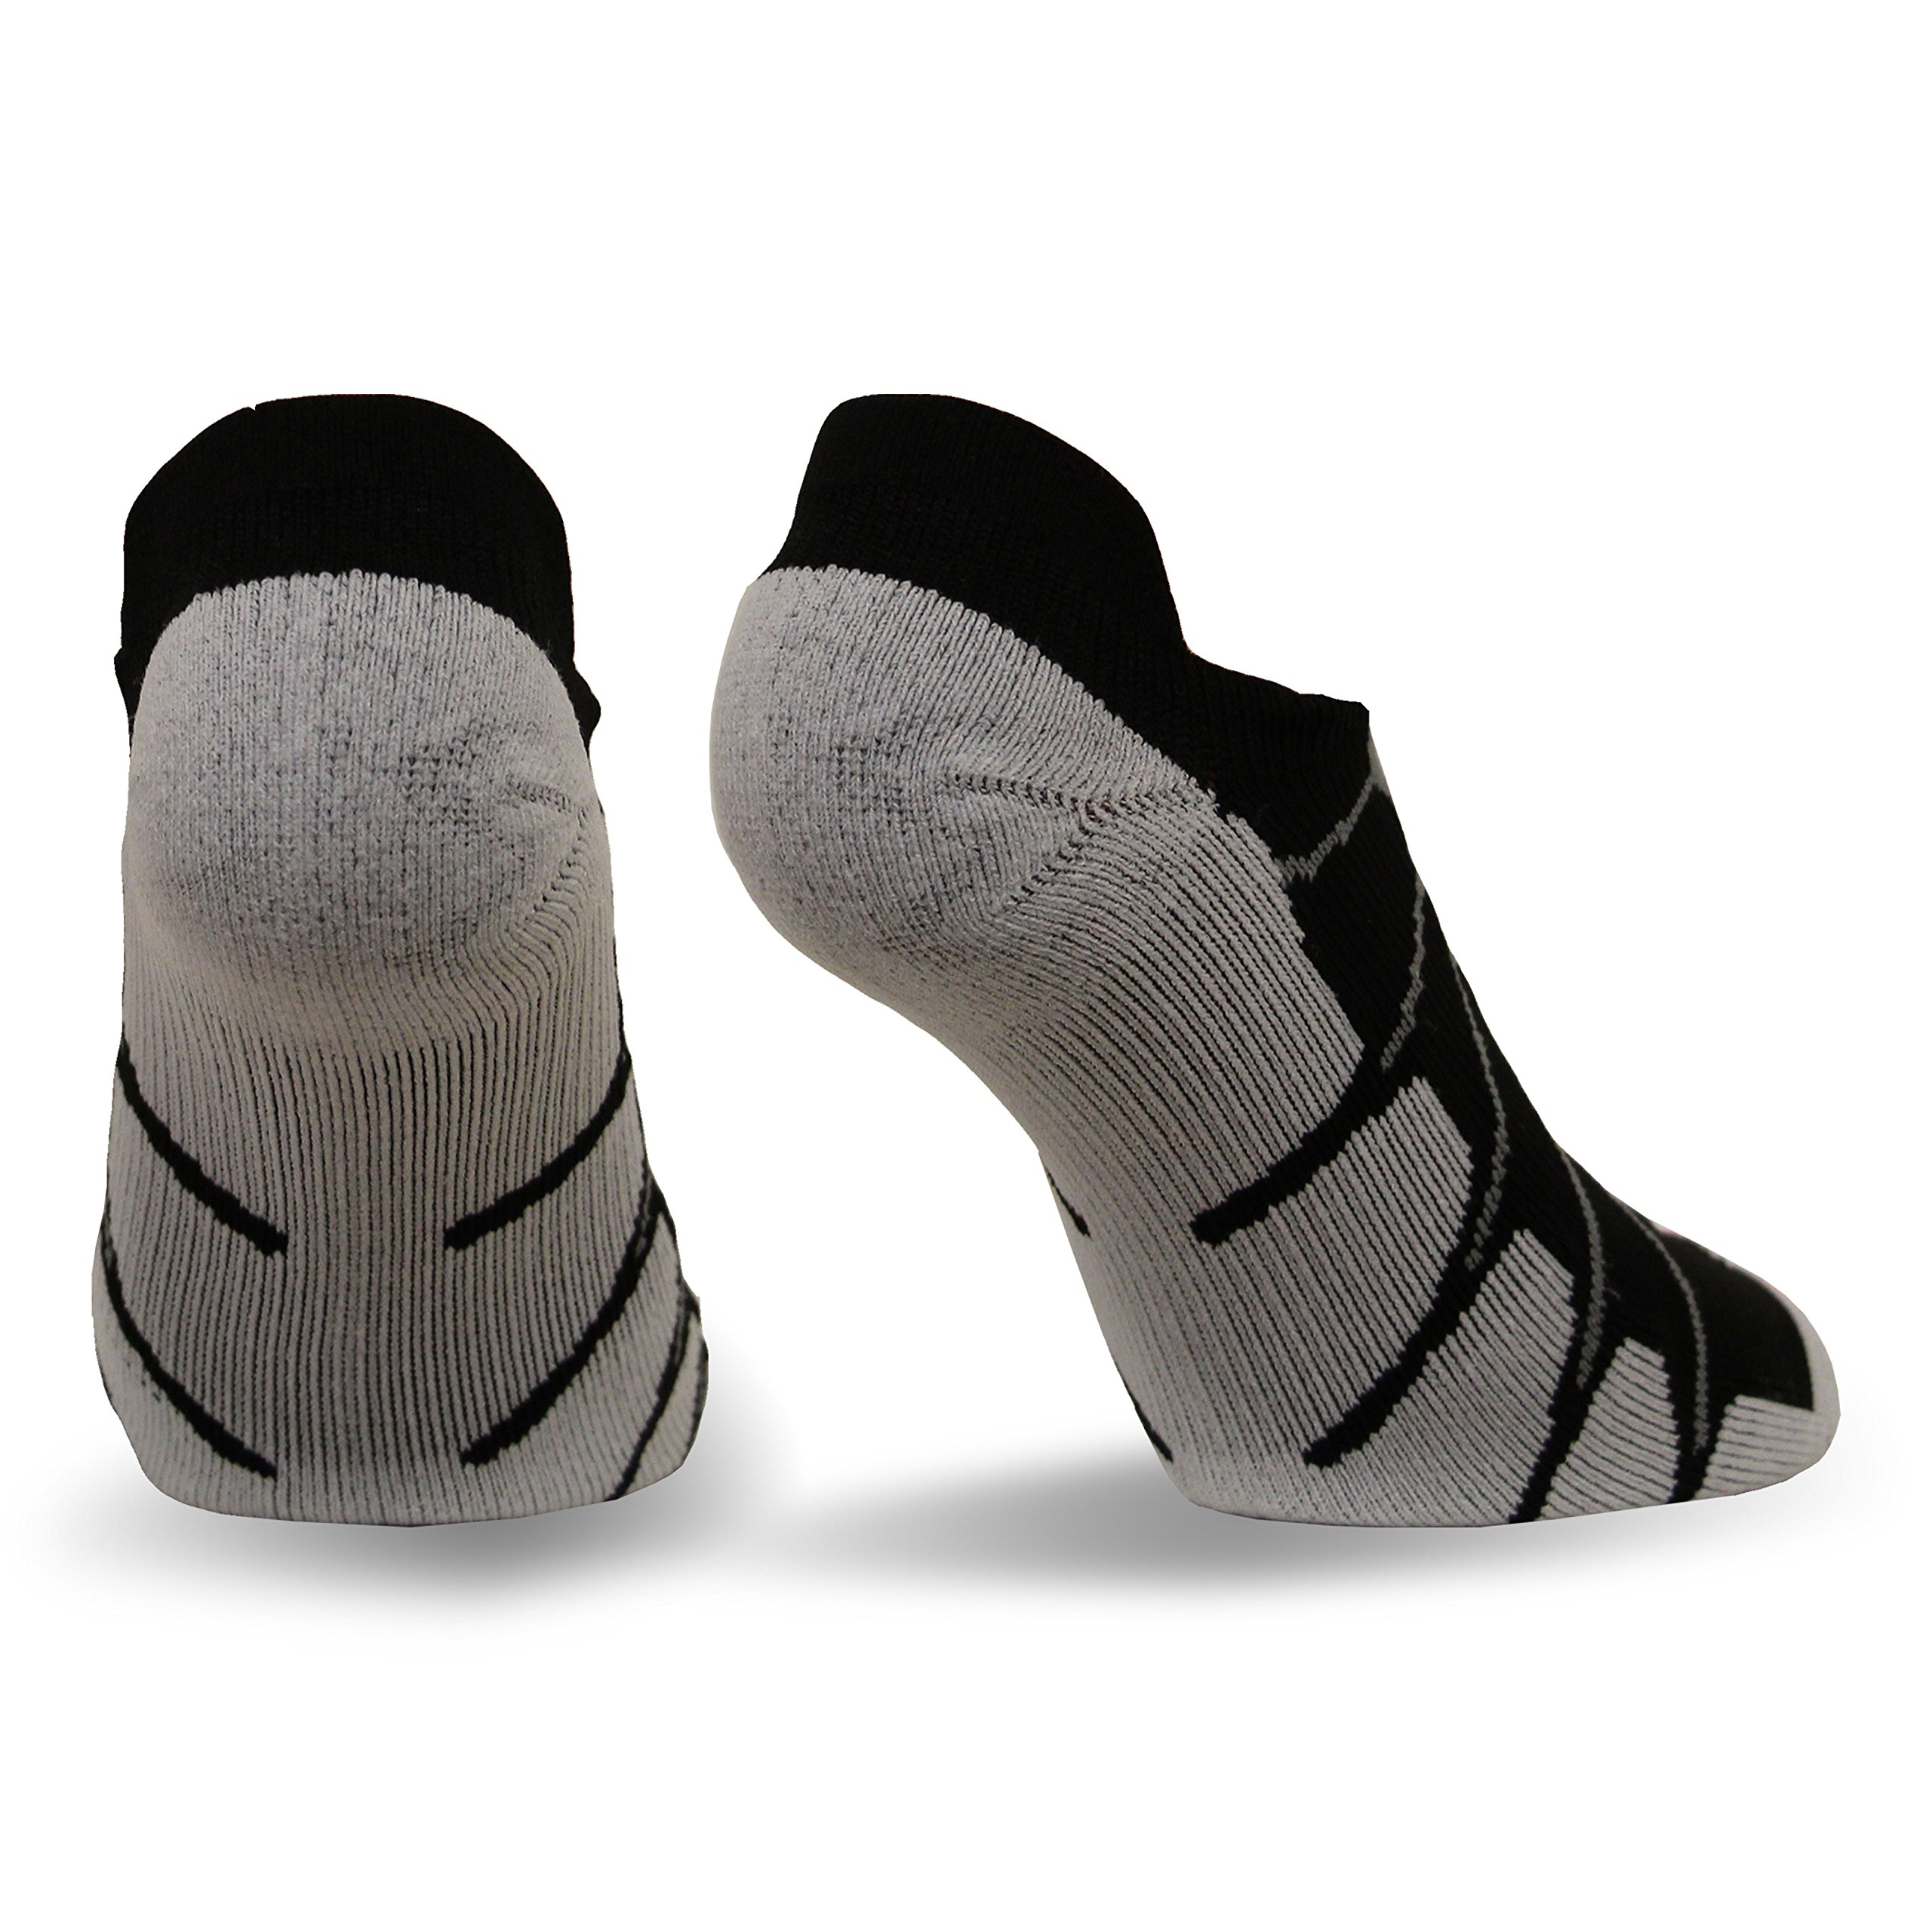 Sox Italy No Show Ghost Socks - Silver Drystat Plantar Support Performance Socks - Black, Large - SS6011 by Sox